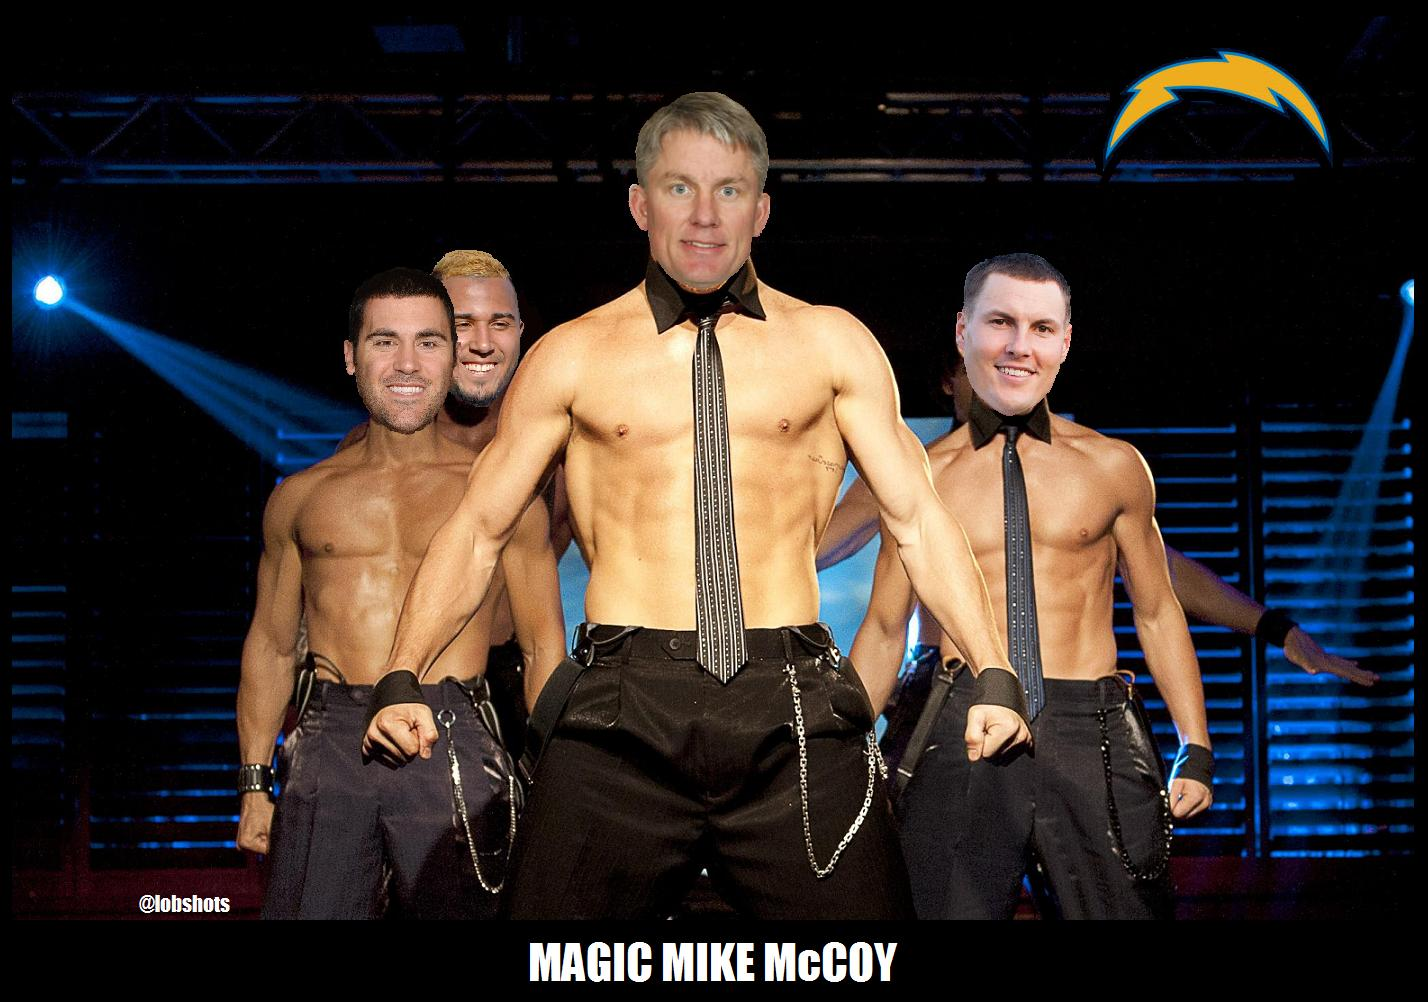 magic-mike-mccoy-chargers1